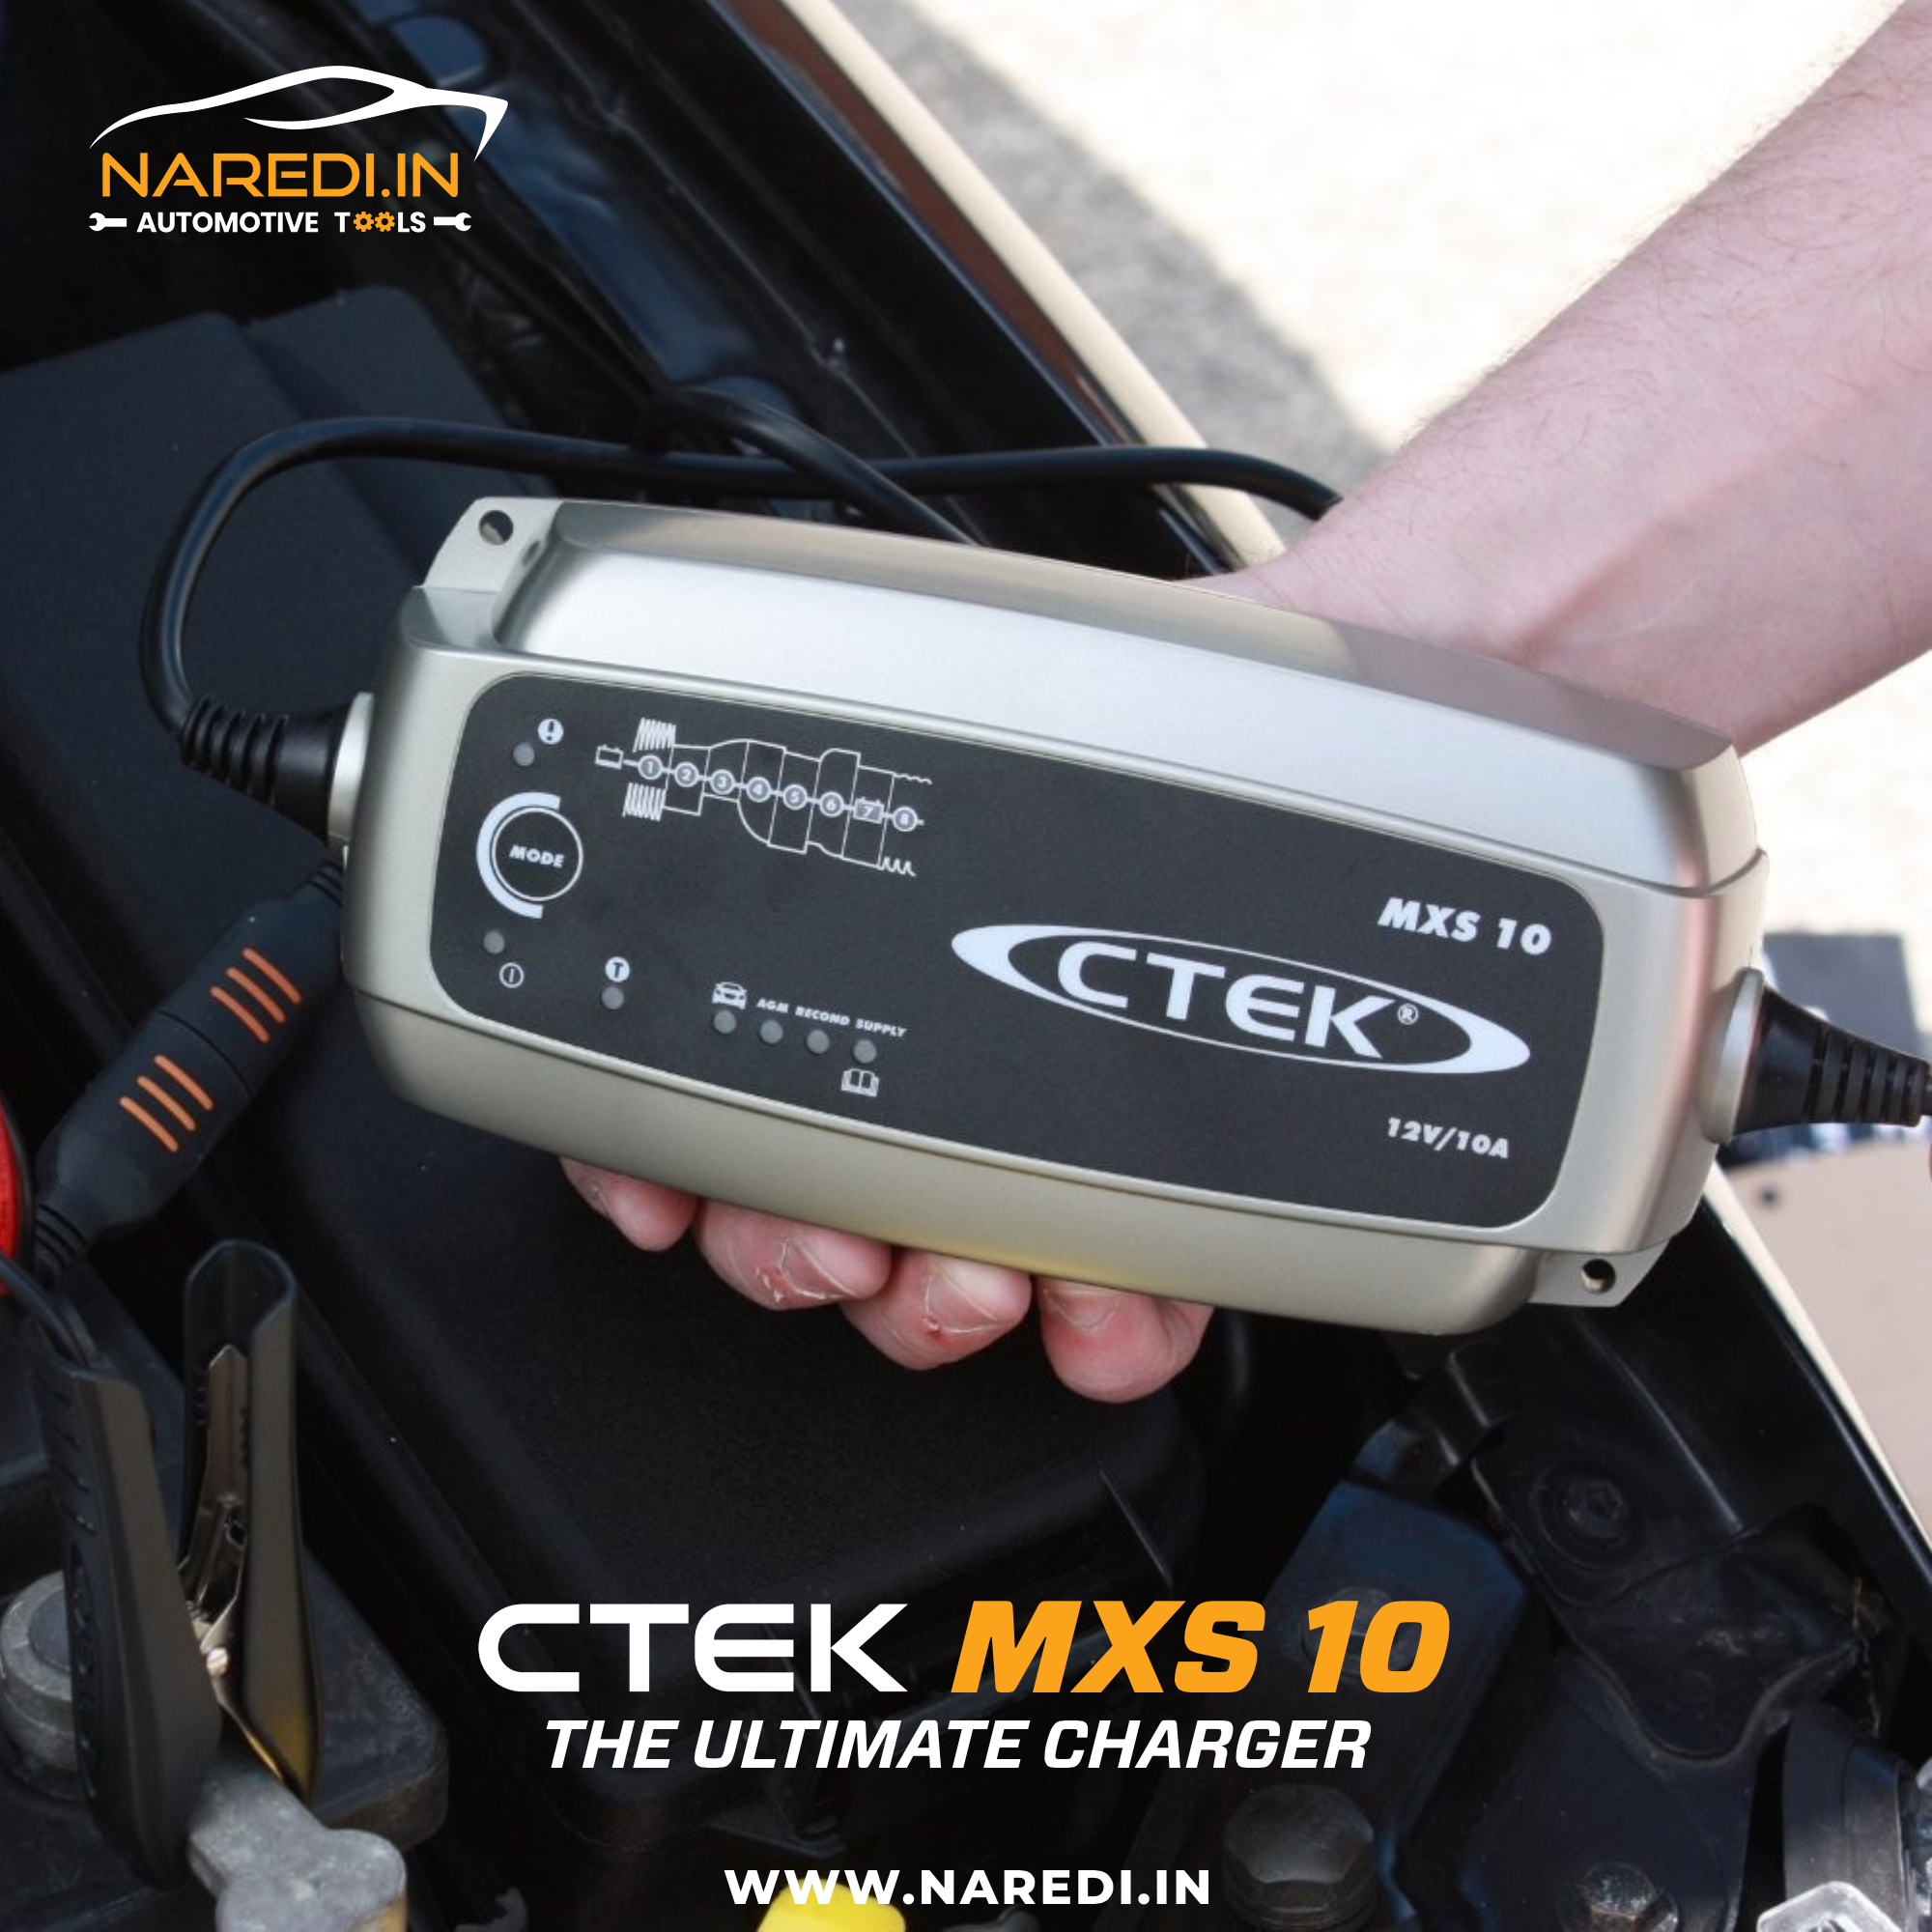 The Ctek Mxs 10 Is A Fully Automatic 8 Step Charger That Delivers 10a To 12v Batteries From 20 200ah And Is Also S Car Tools Car Battery Chargers 12v Batteries